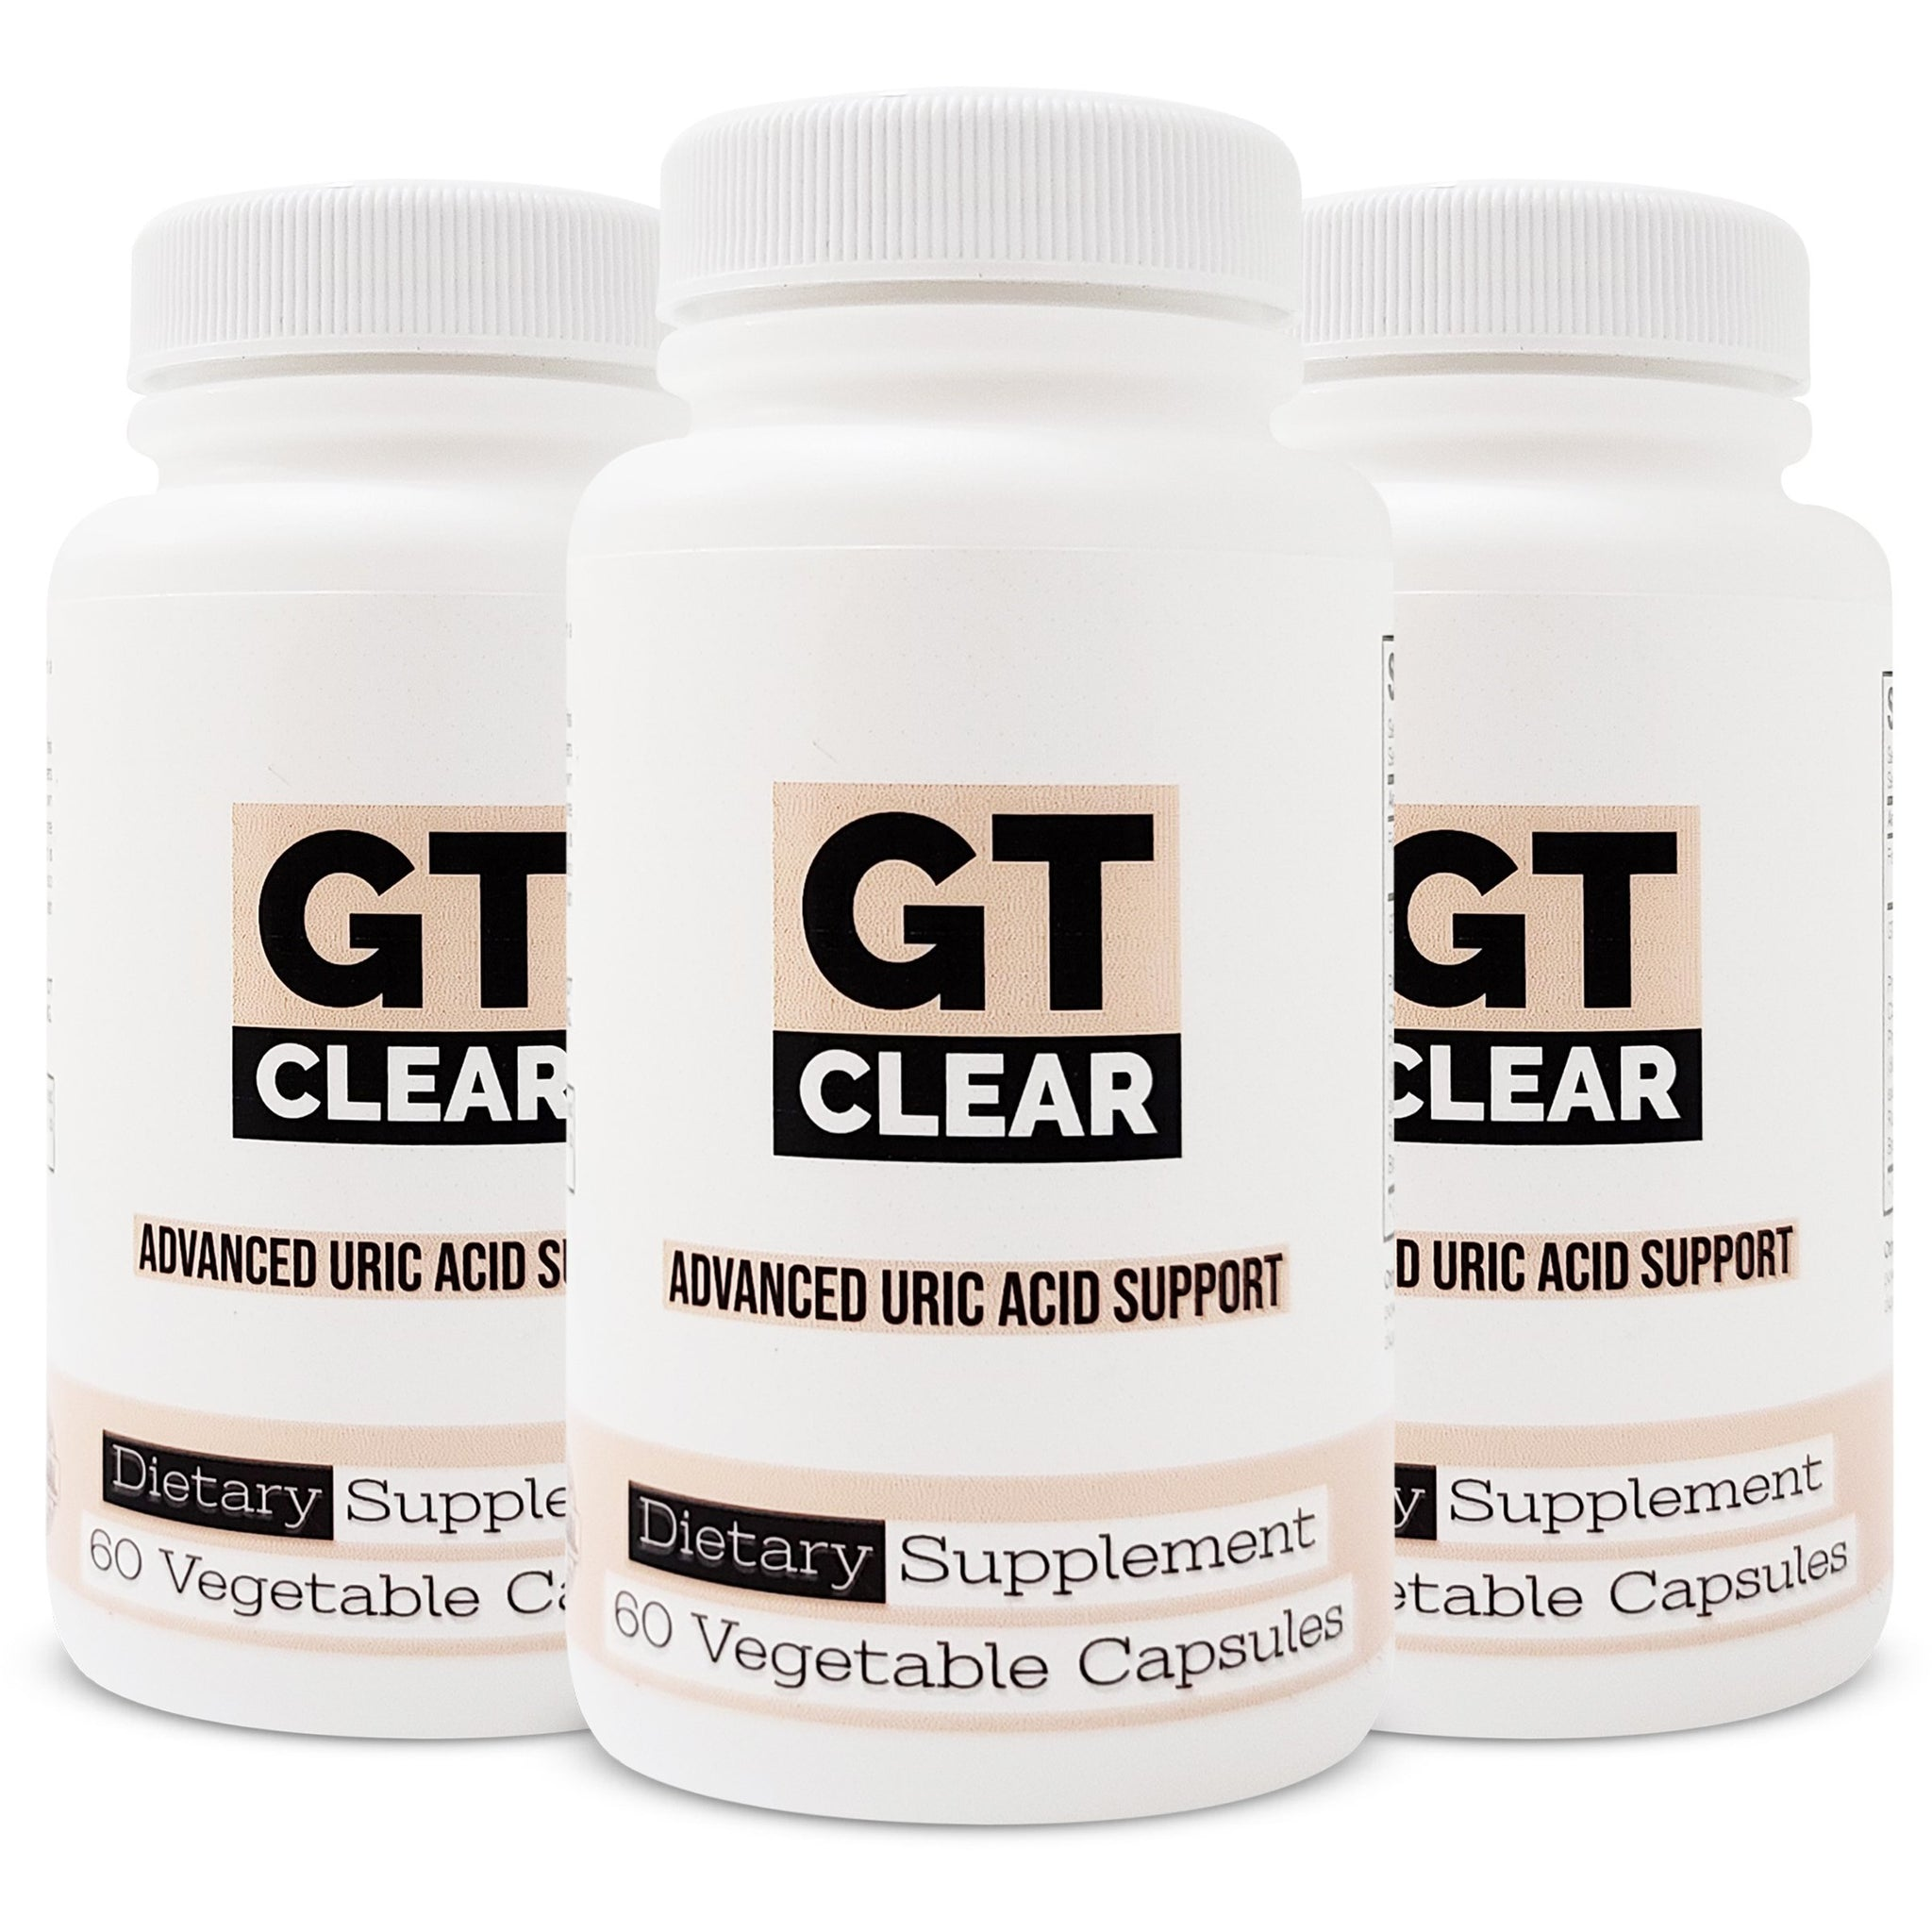 Buy 2 Get 1 Free Of GTClear